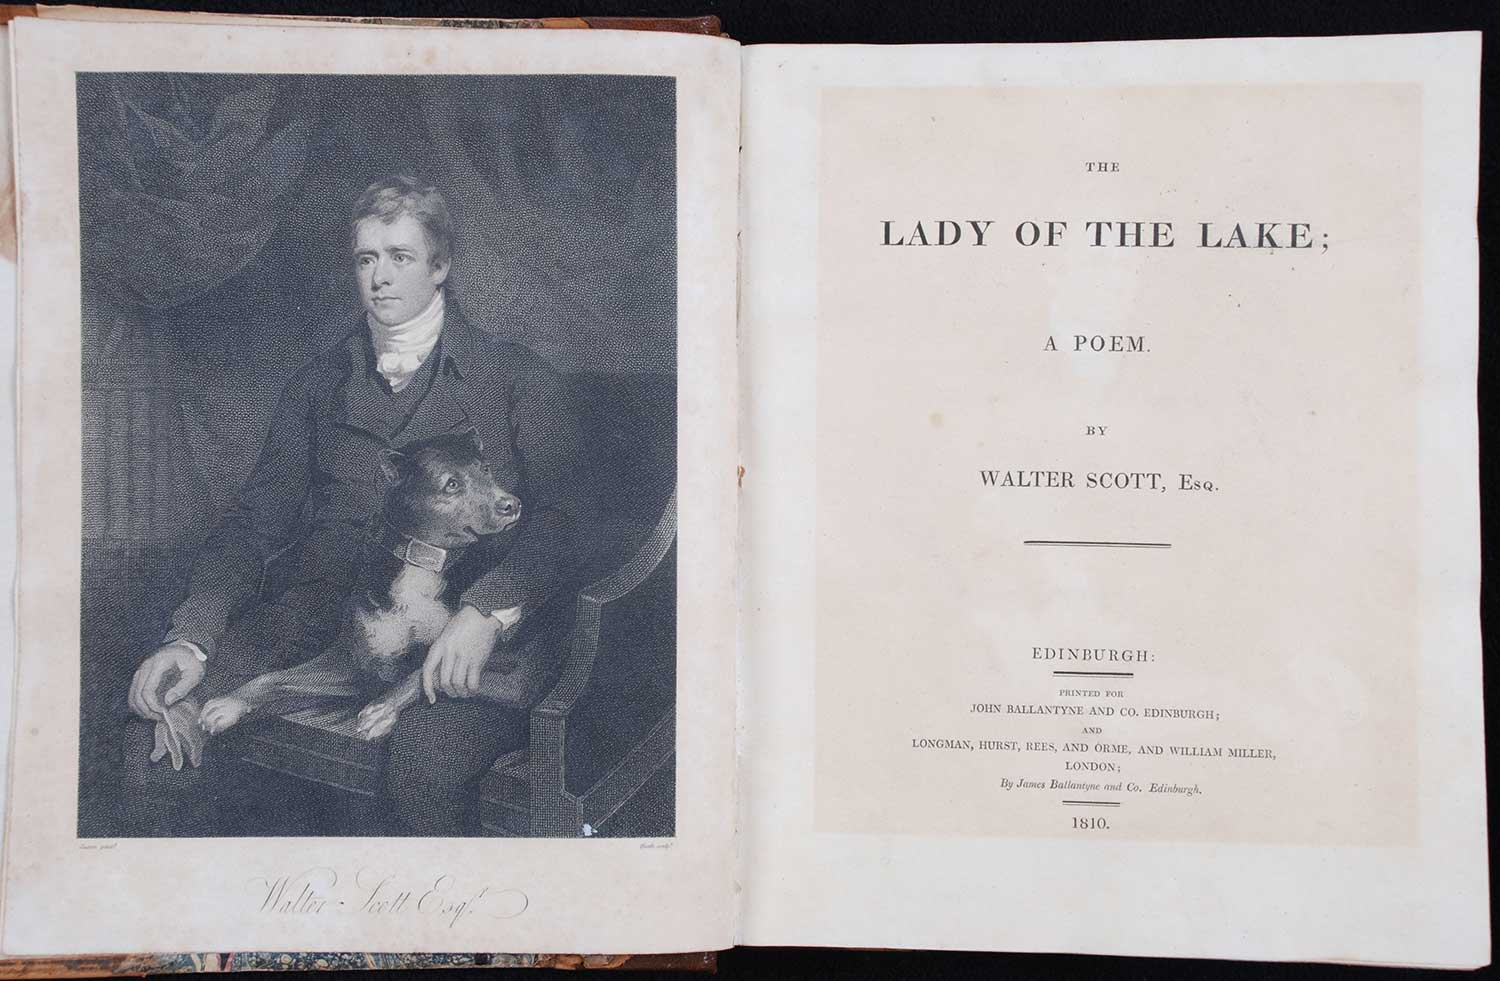 Sir Walter Scott. <em>The lady of the lake: a poem.</em> [1st edition]. Edinburgh: Printed for John Ballantyne and Co., Edinburgh; and Longman, Hurst, Rees and Orme, and William Miller, London; by James Ballantyne and Co., Edinburgh, 1810.